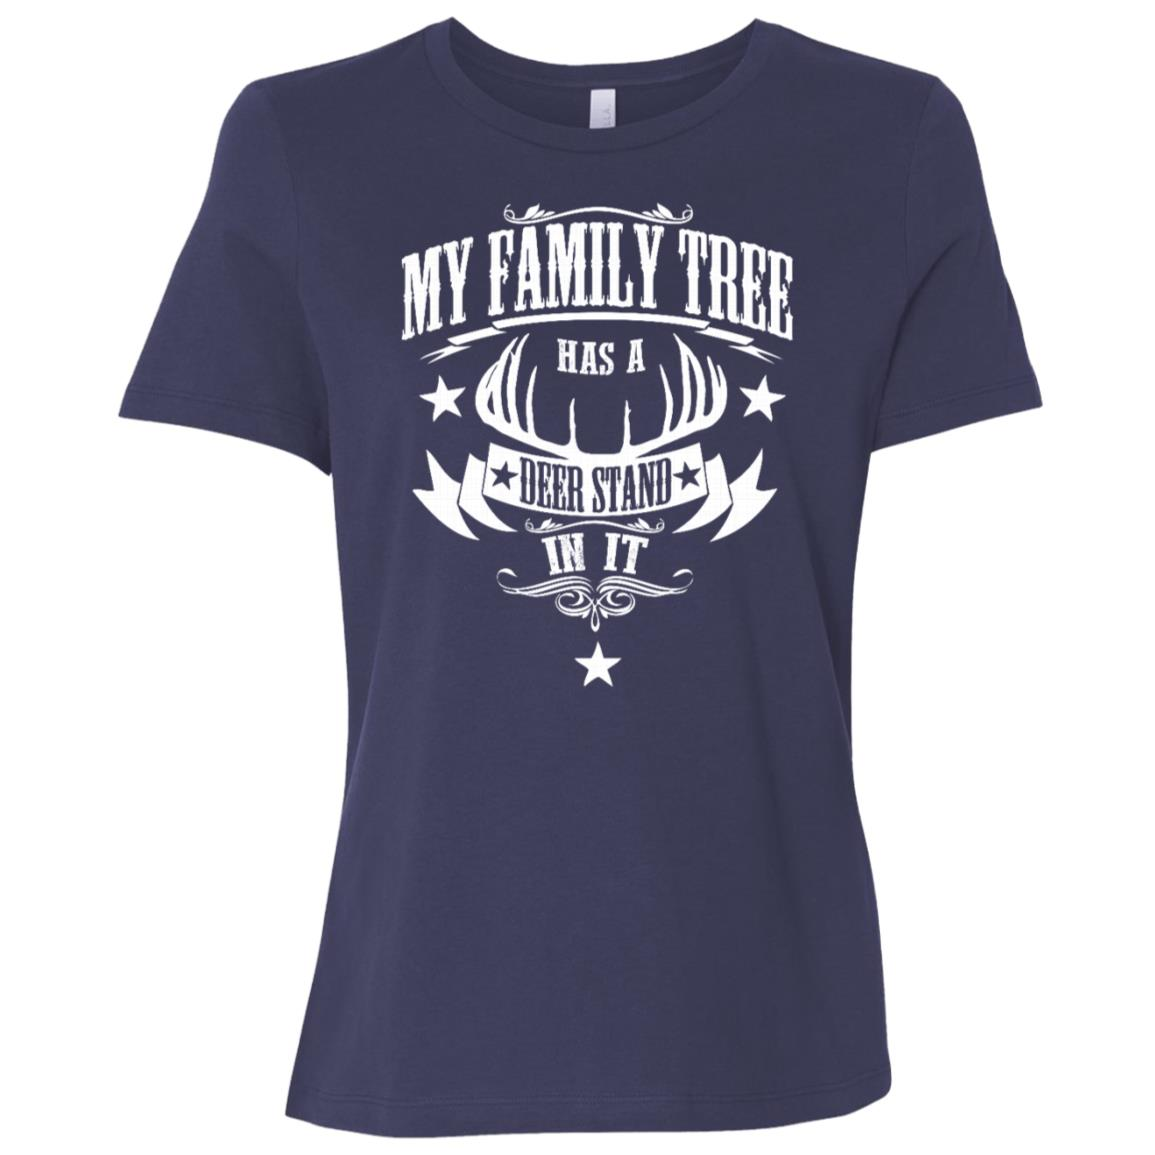 My Family Tree has a Deer Stand in it Women Short Sleeve T-Shirt